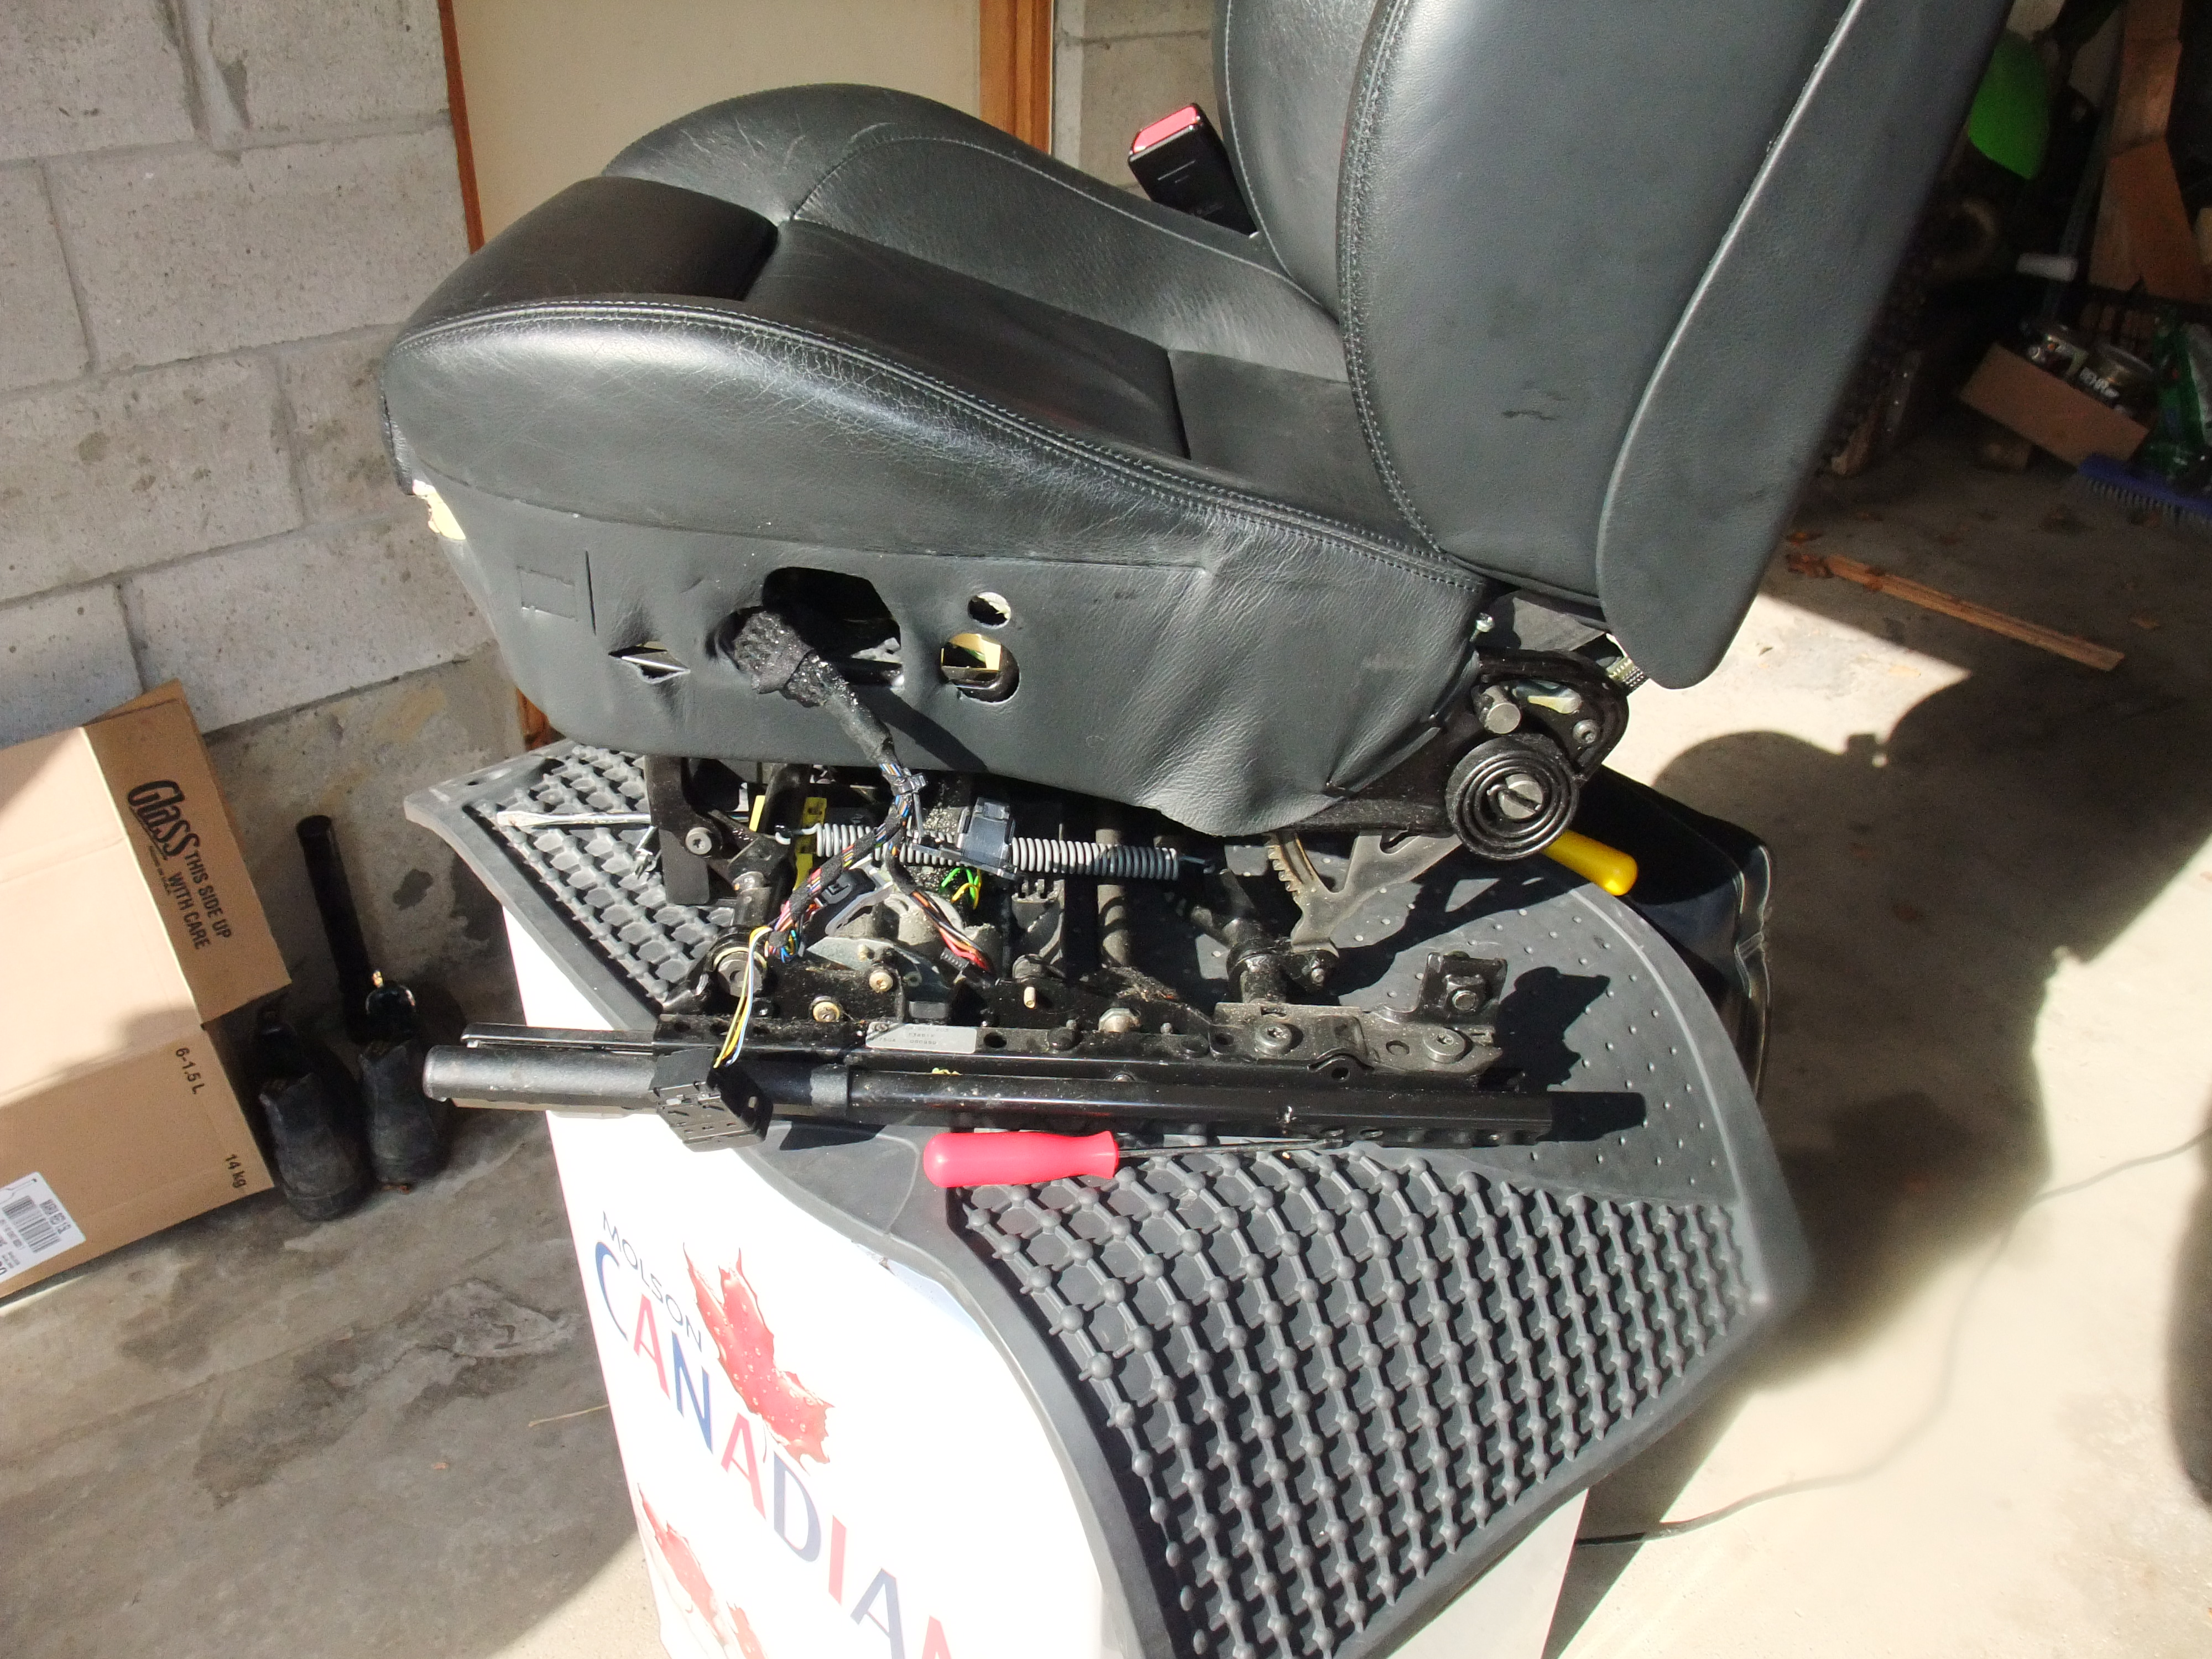 Heated Seat Repair - with pics-dscf3209.jpg